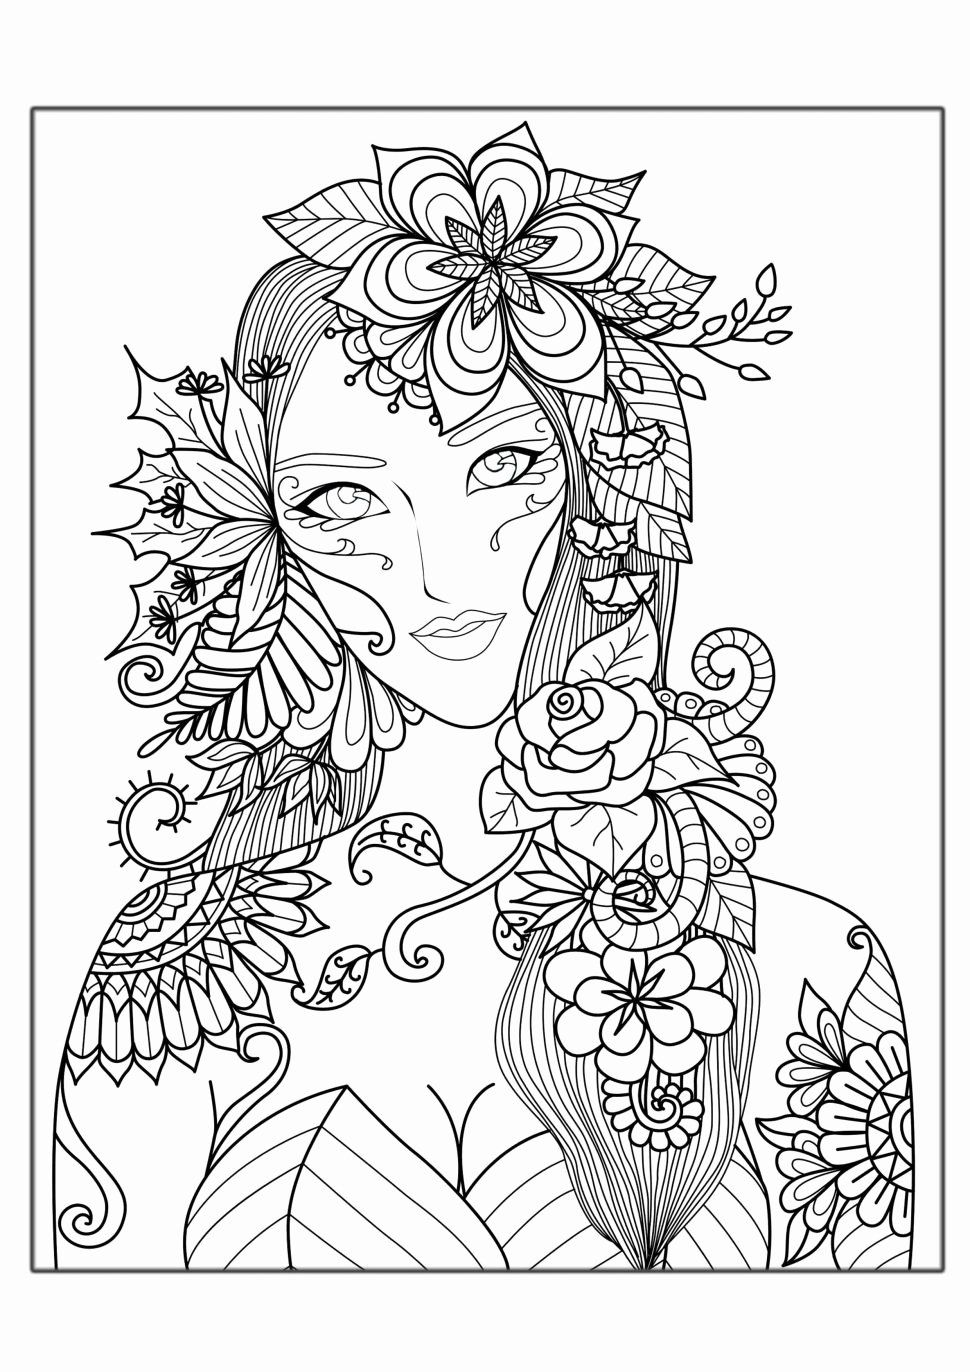 45+ Aesthetic summer coloring pages for adults ideas